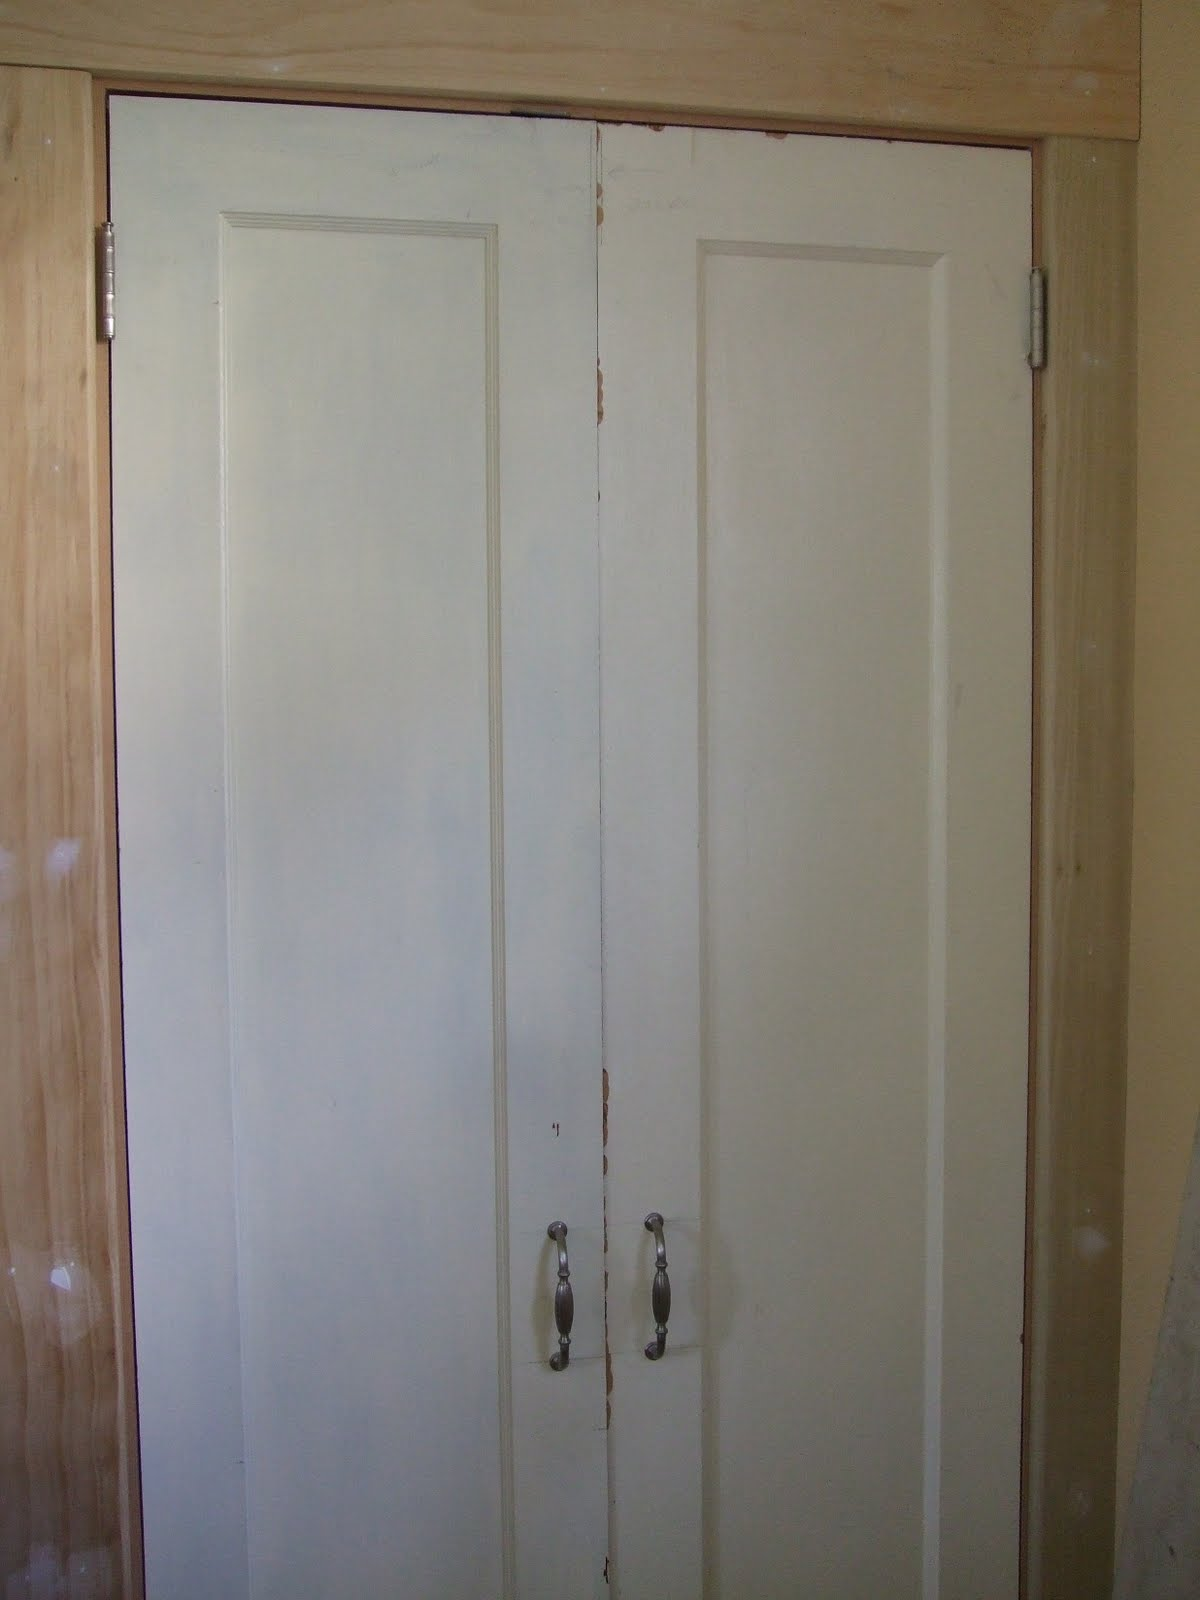 The smiths pantry door frame and trim for 18 door